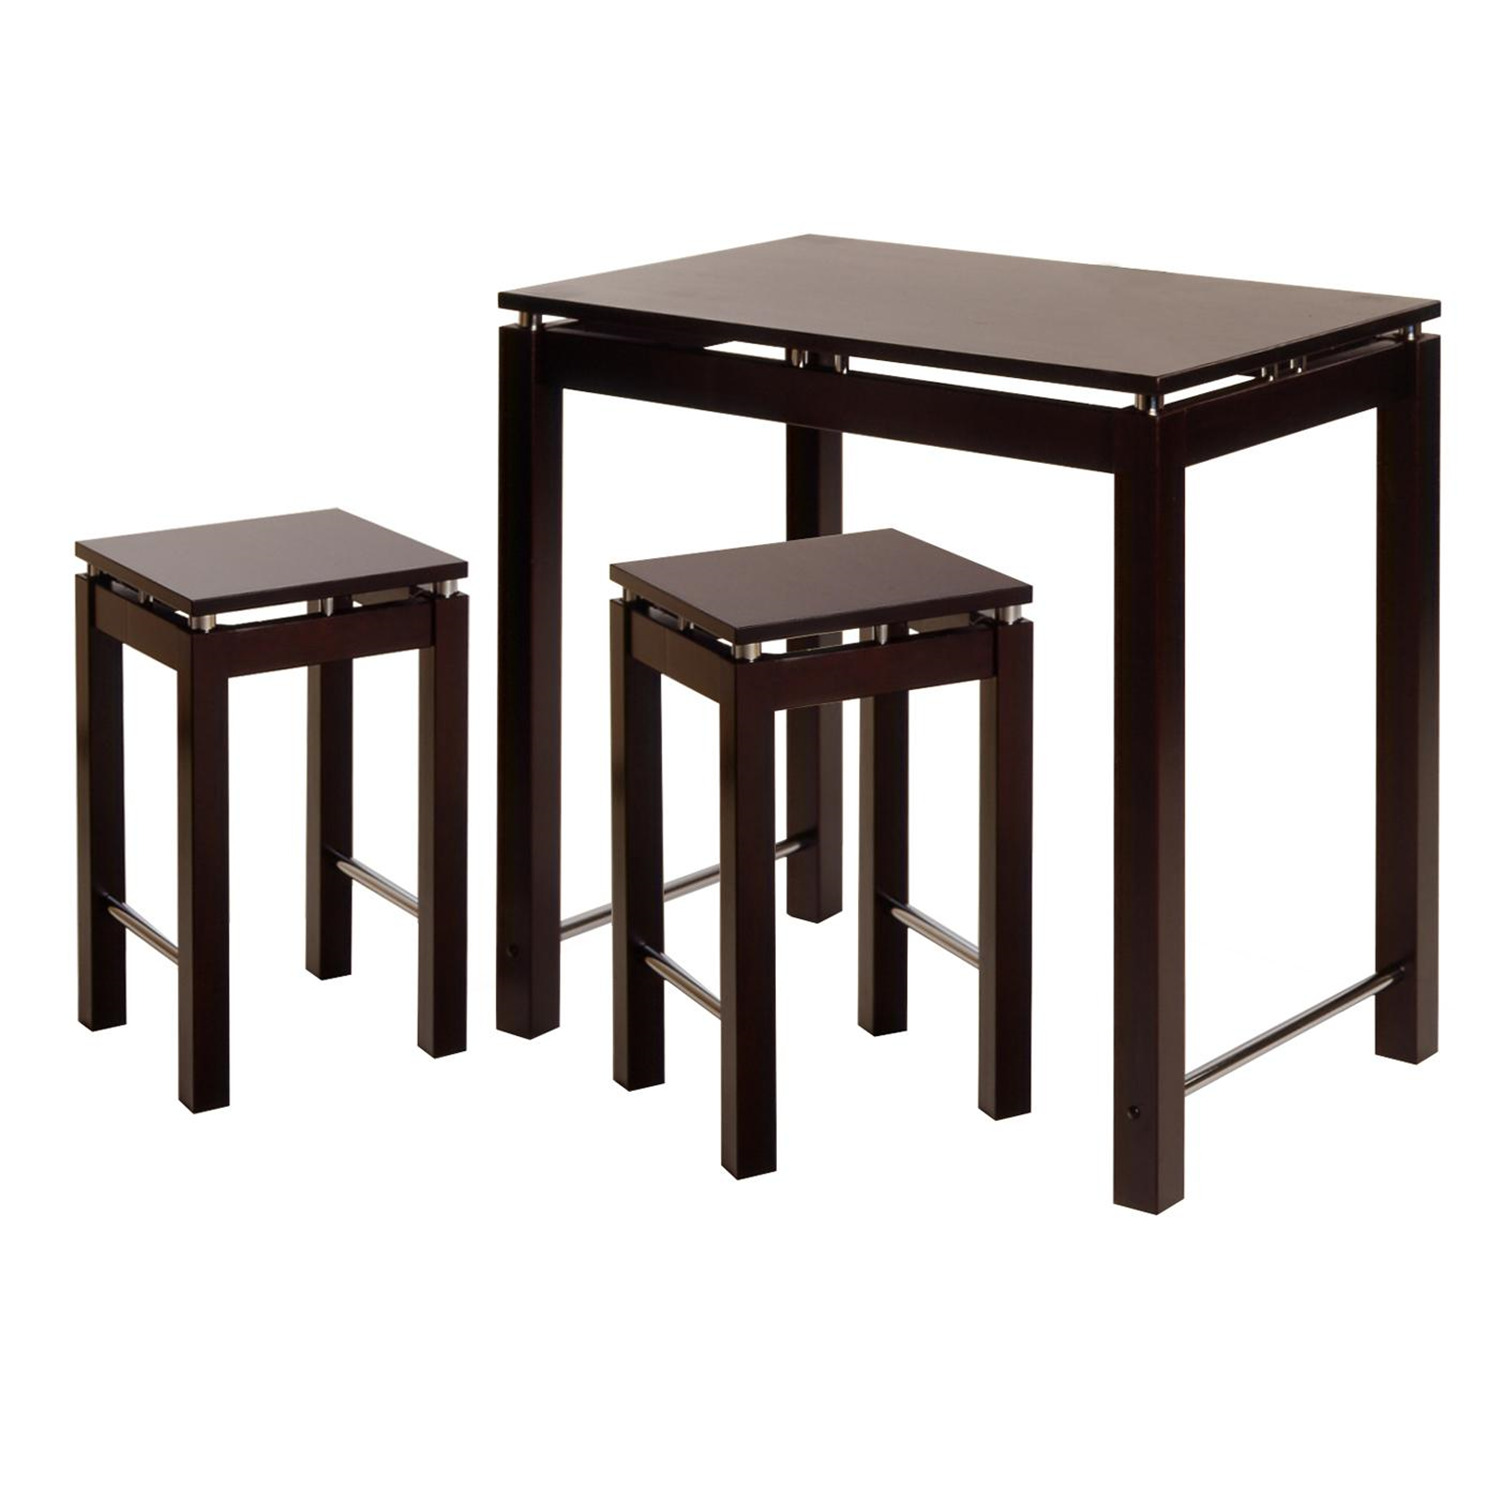 Winsome linea 3pc pub kitchen set island table with 2 for Kitchen island table